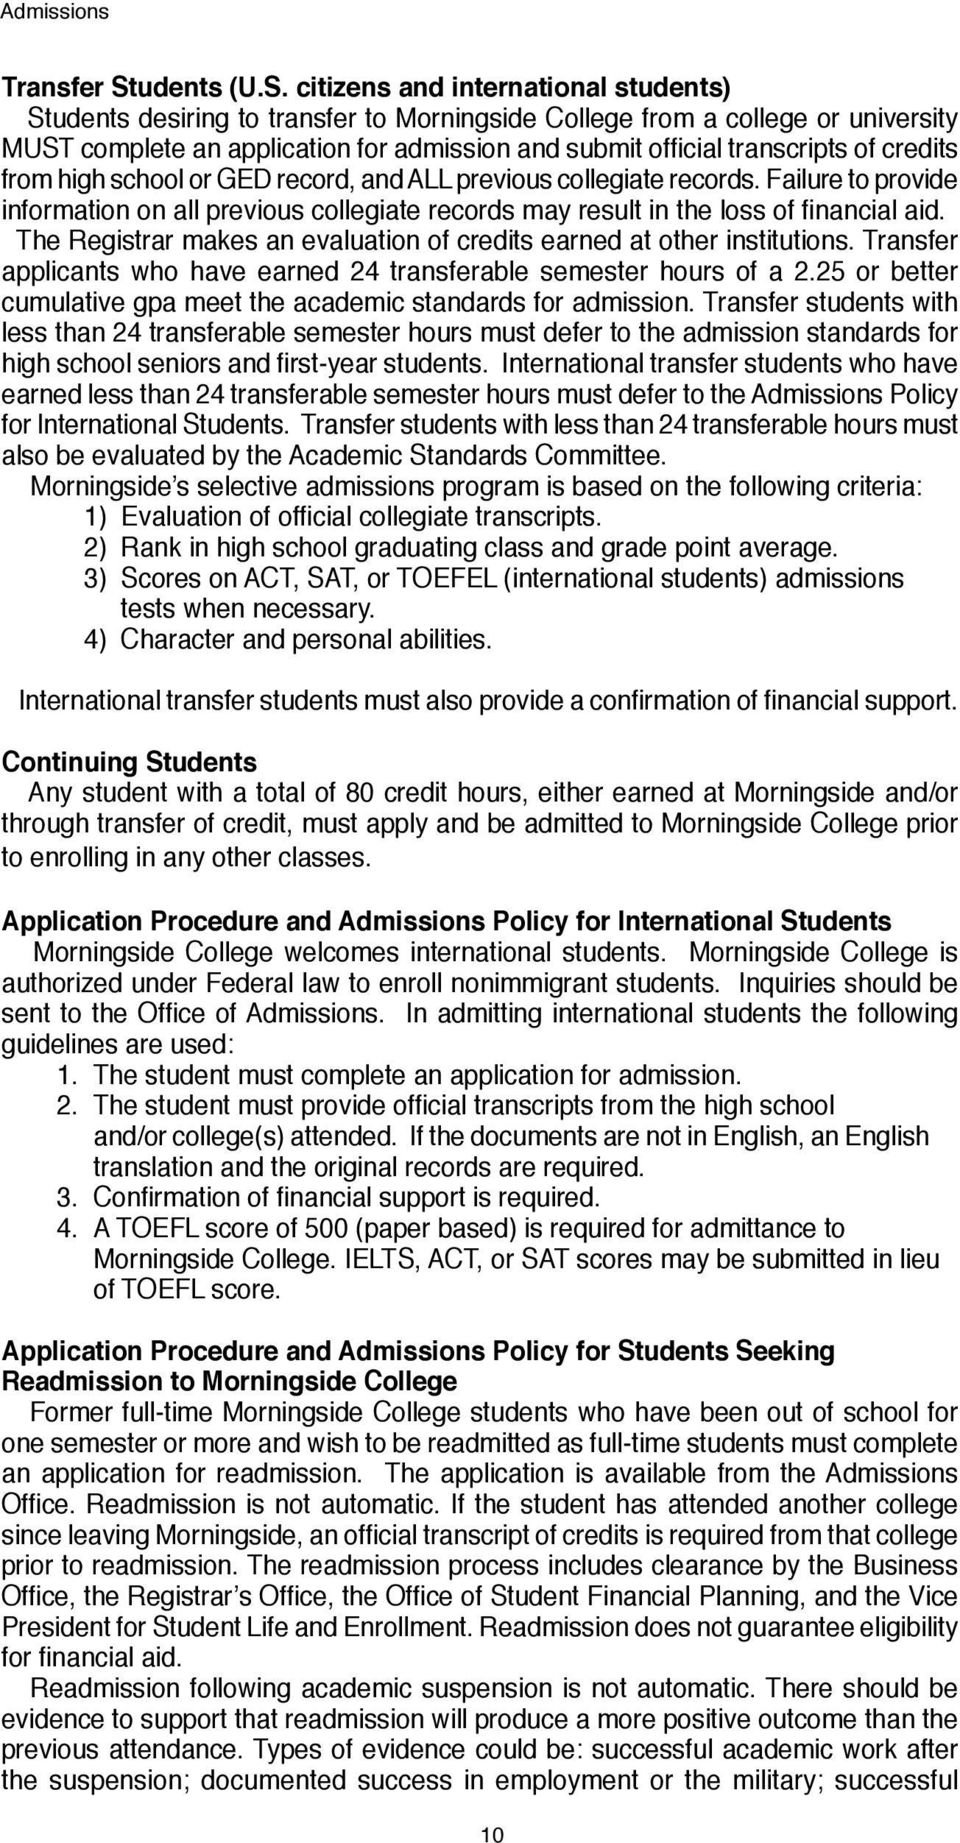 citizens and international students) Students desiring to transfer to Morningside College from a college or university must complete an application for admission and submit official transcripts of